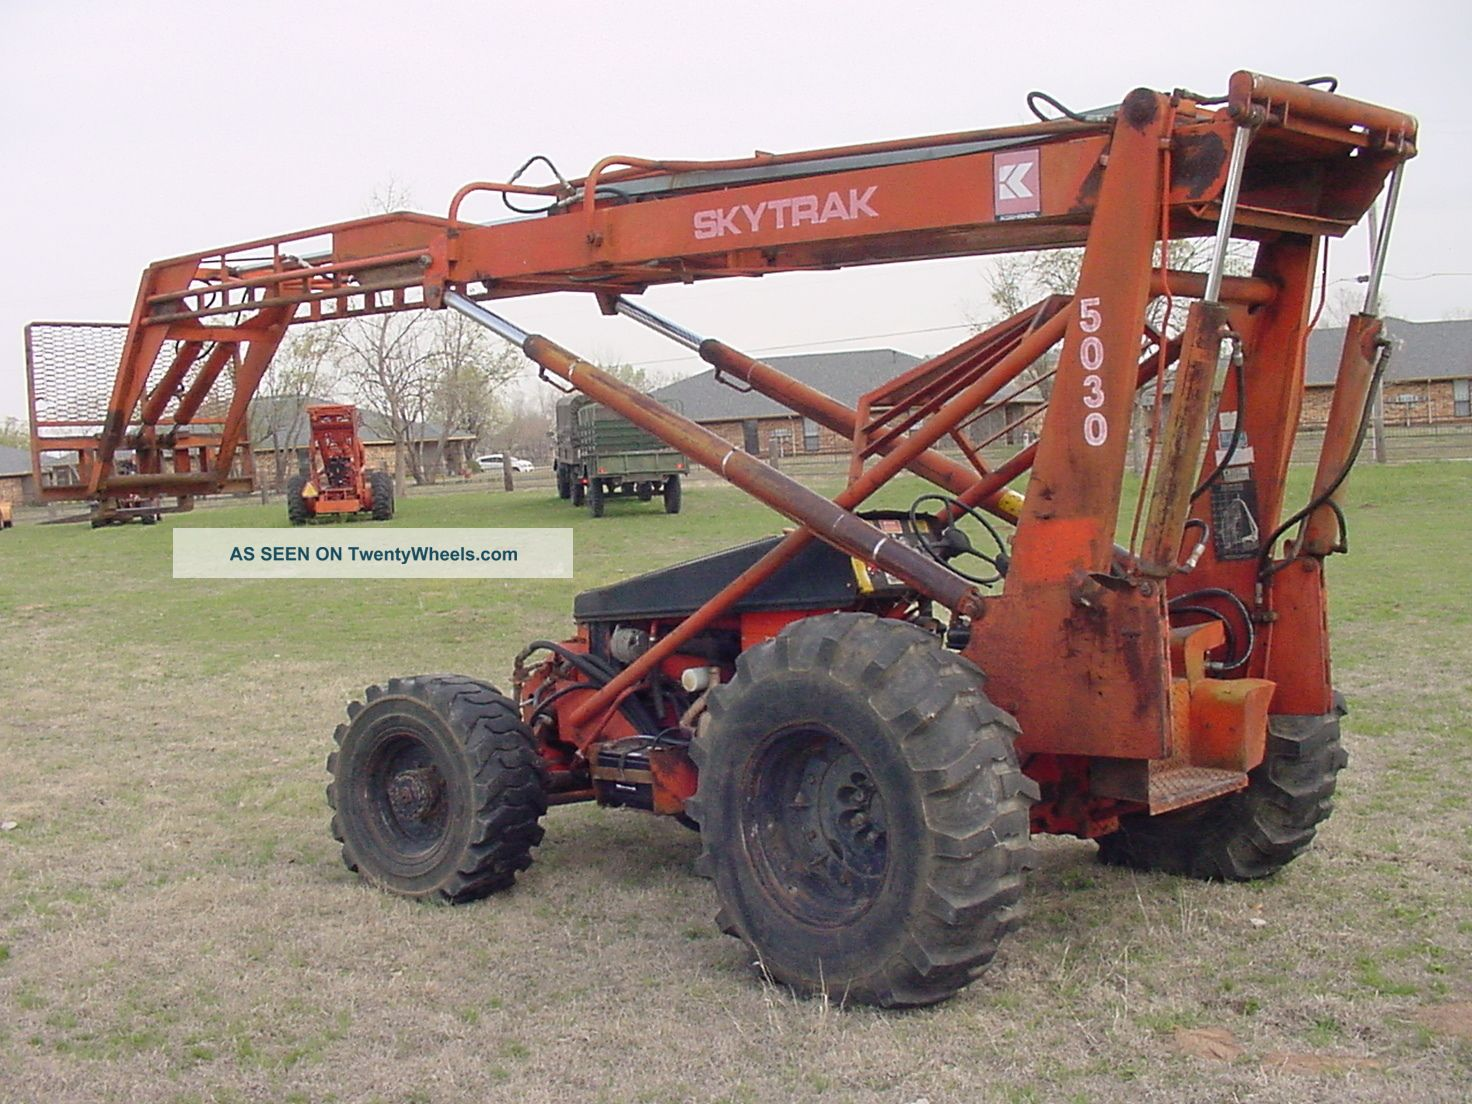 Skytrak 5030 High Lift Forklift 4x4 Diesel Bargain Forklifts & Other Lifts photo